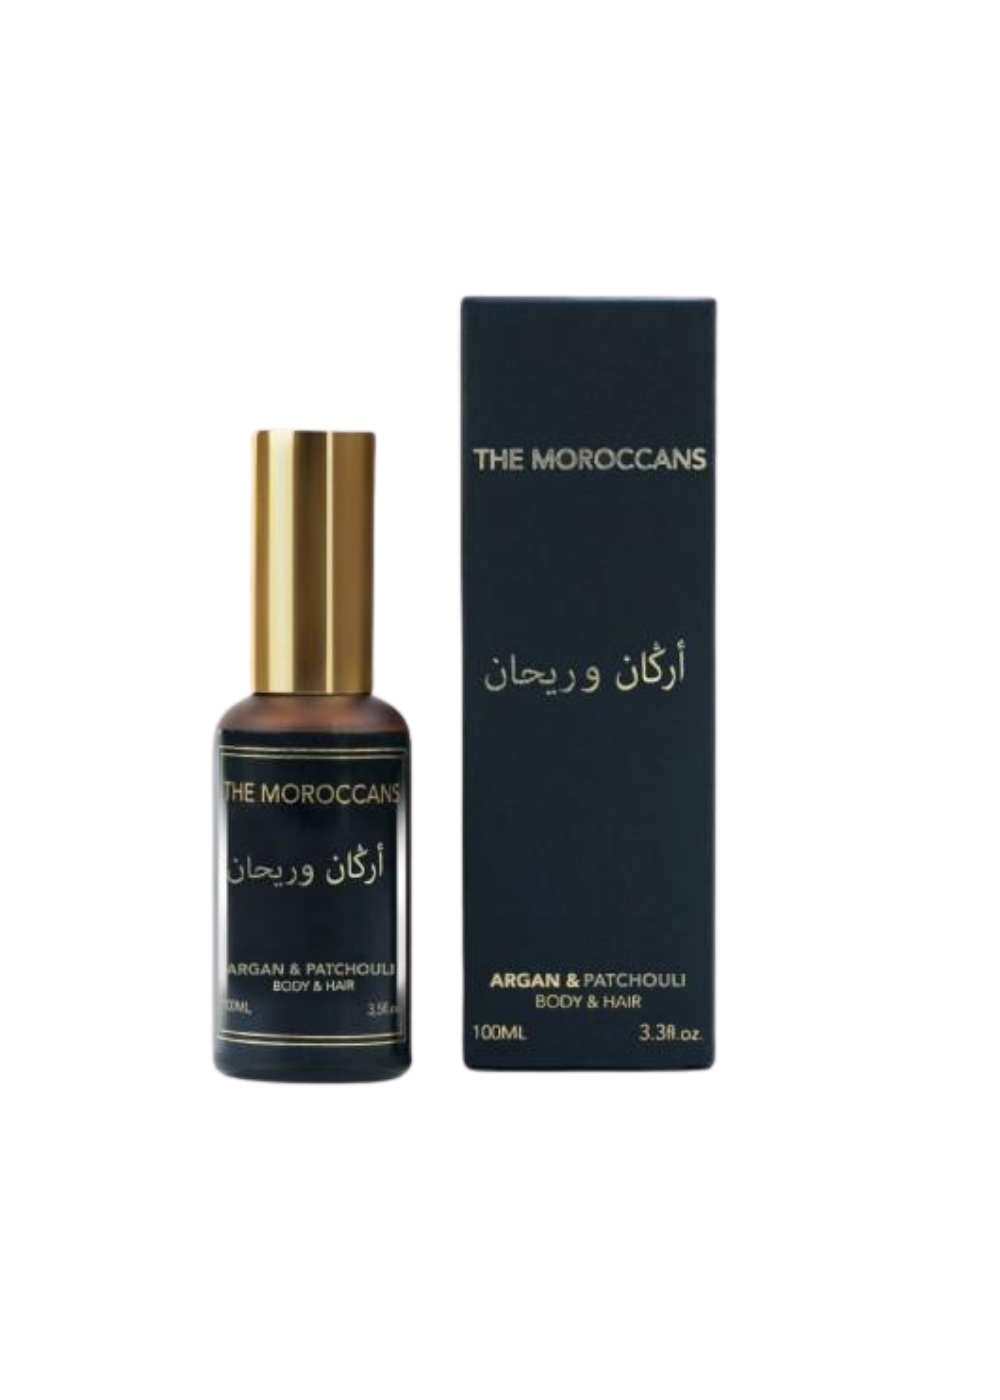 The Moroccans Argan & Patchouli